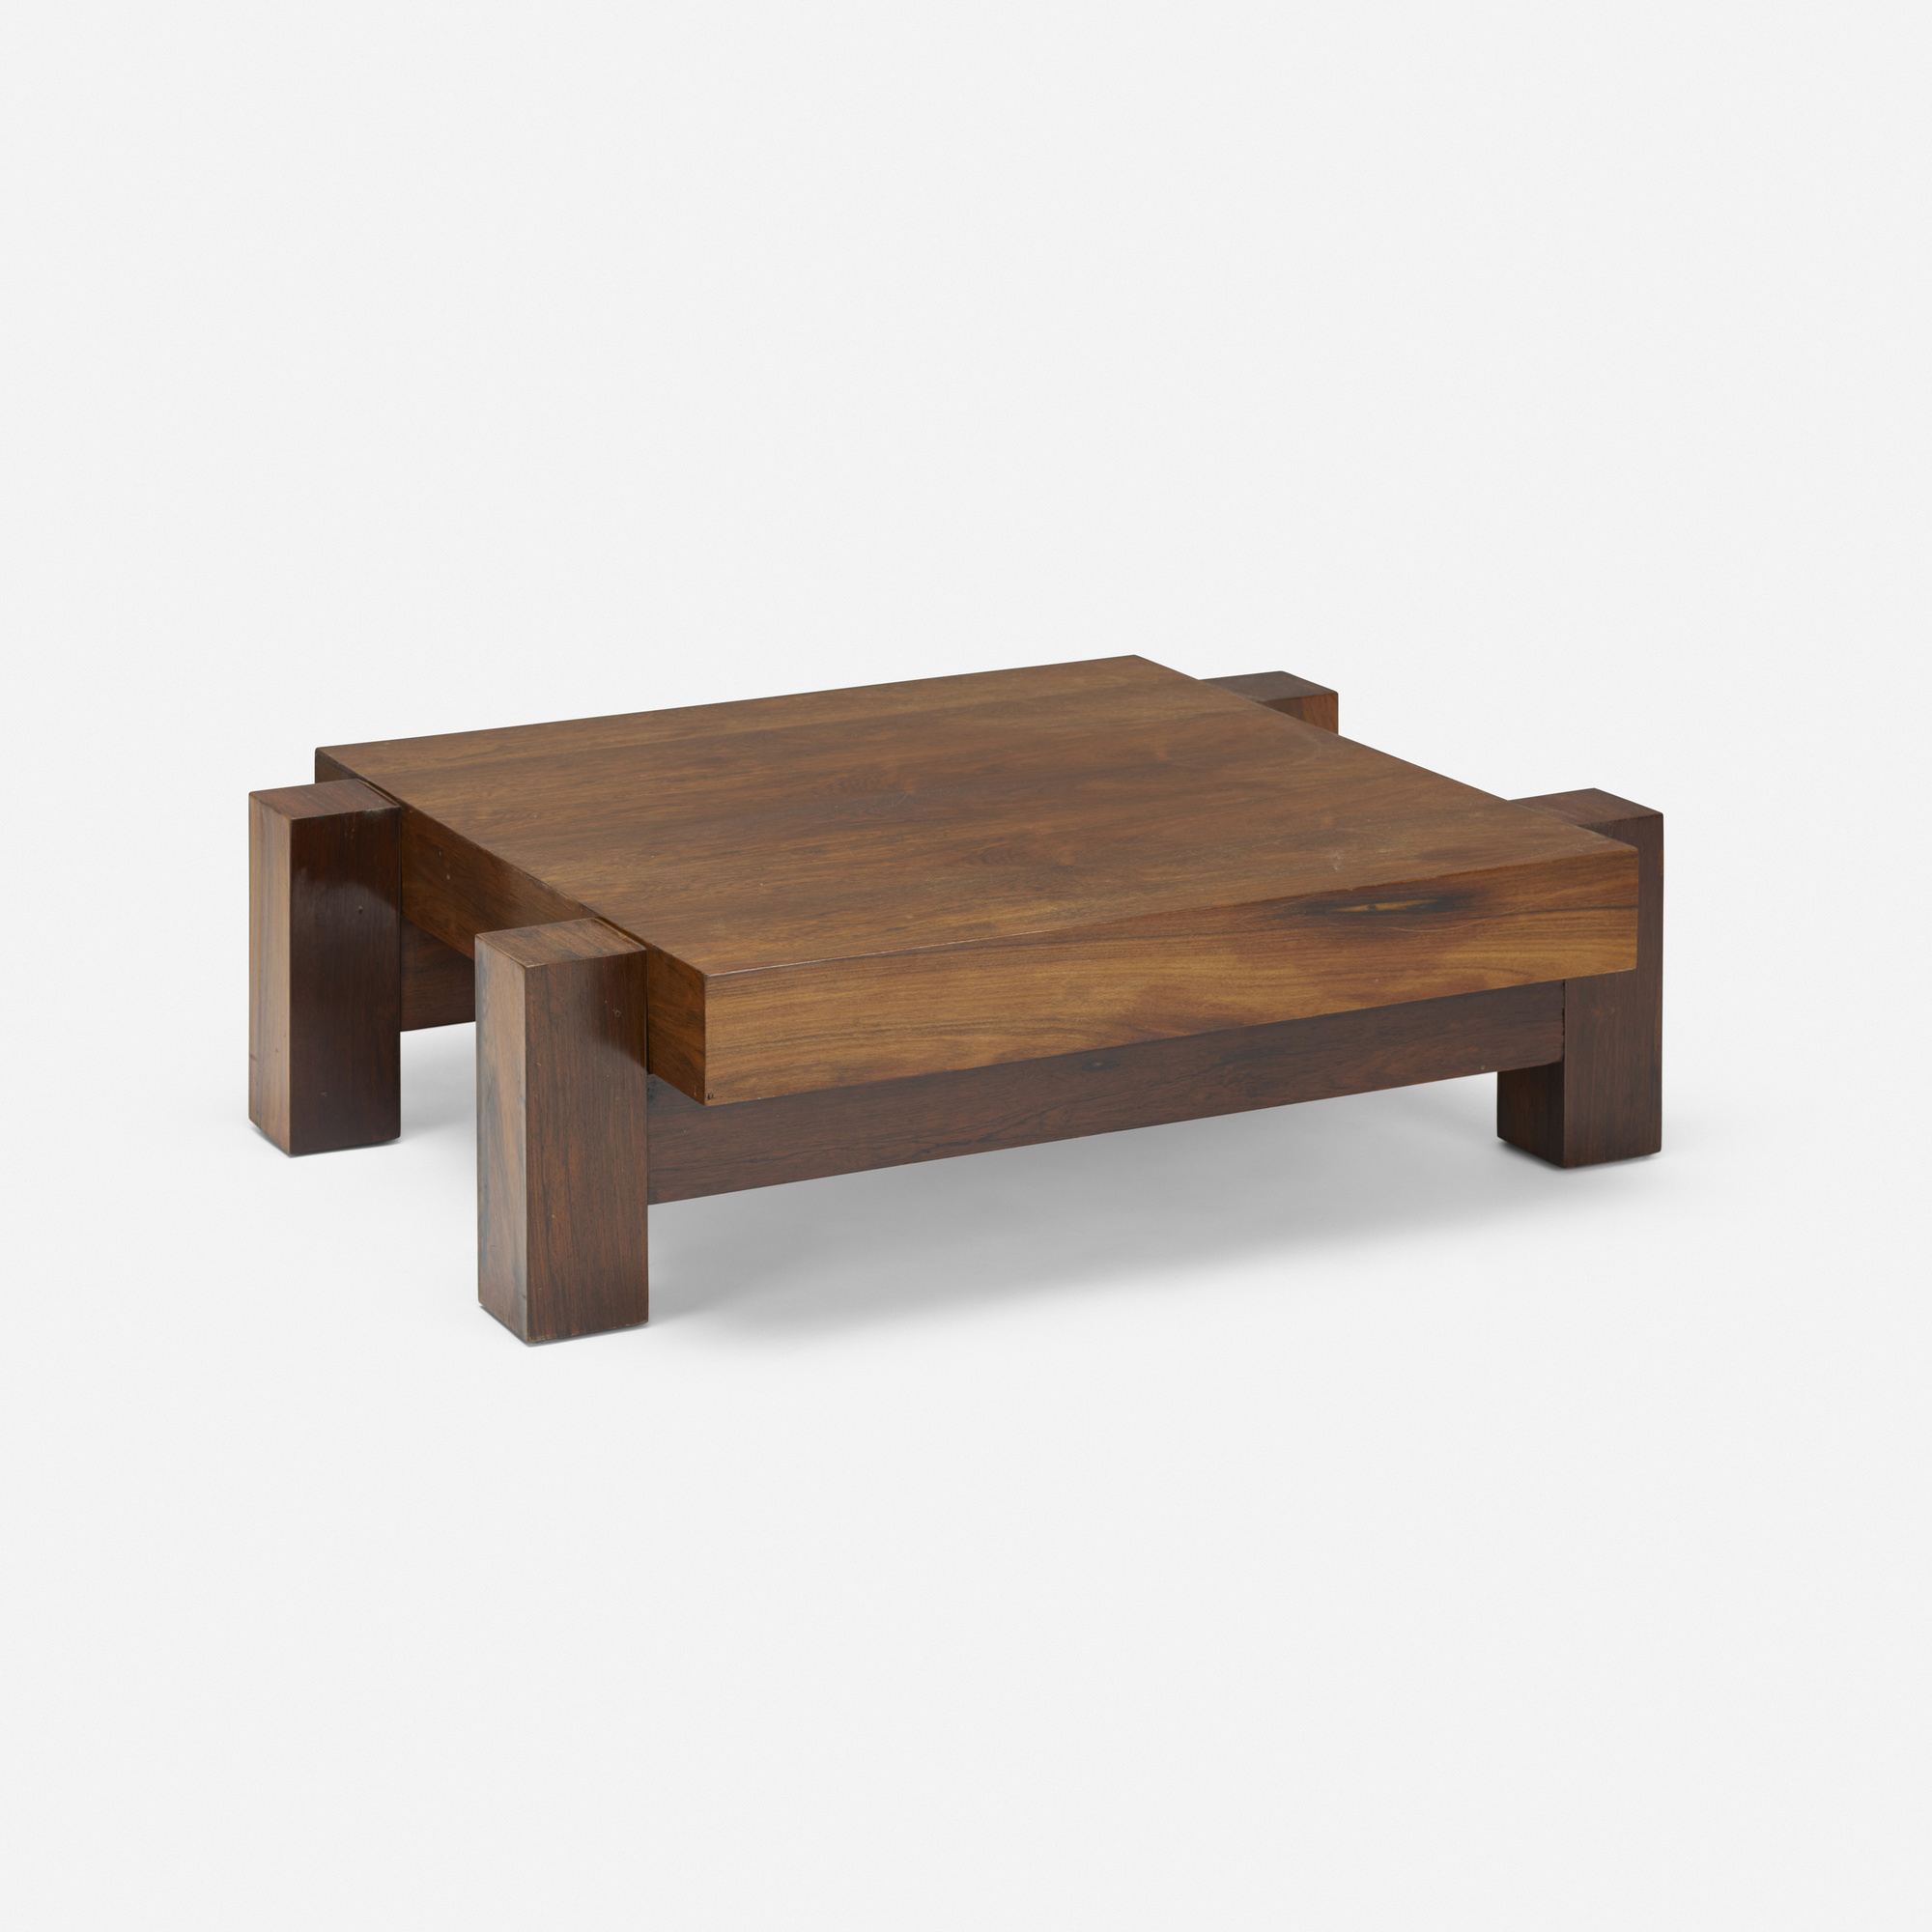 182: Brazilian / coffee table (1 of 2)